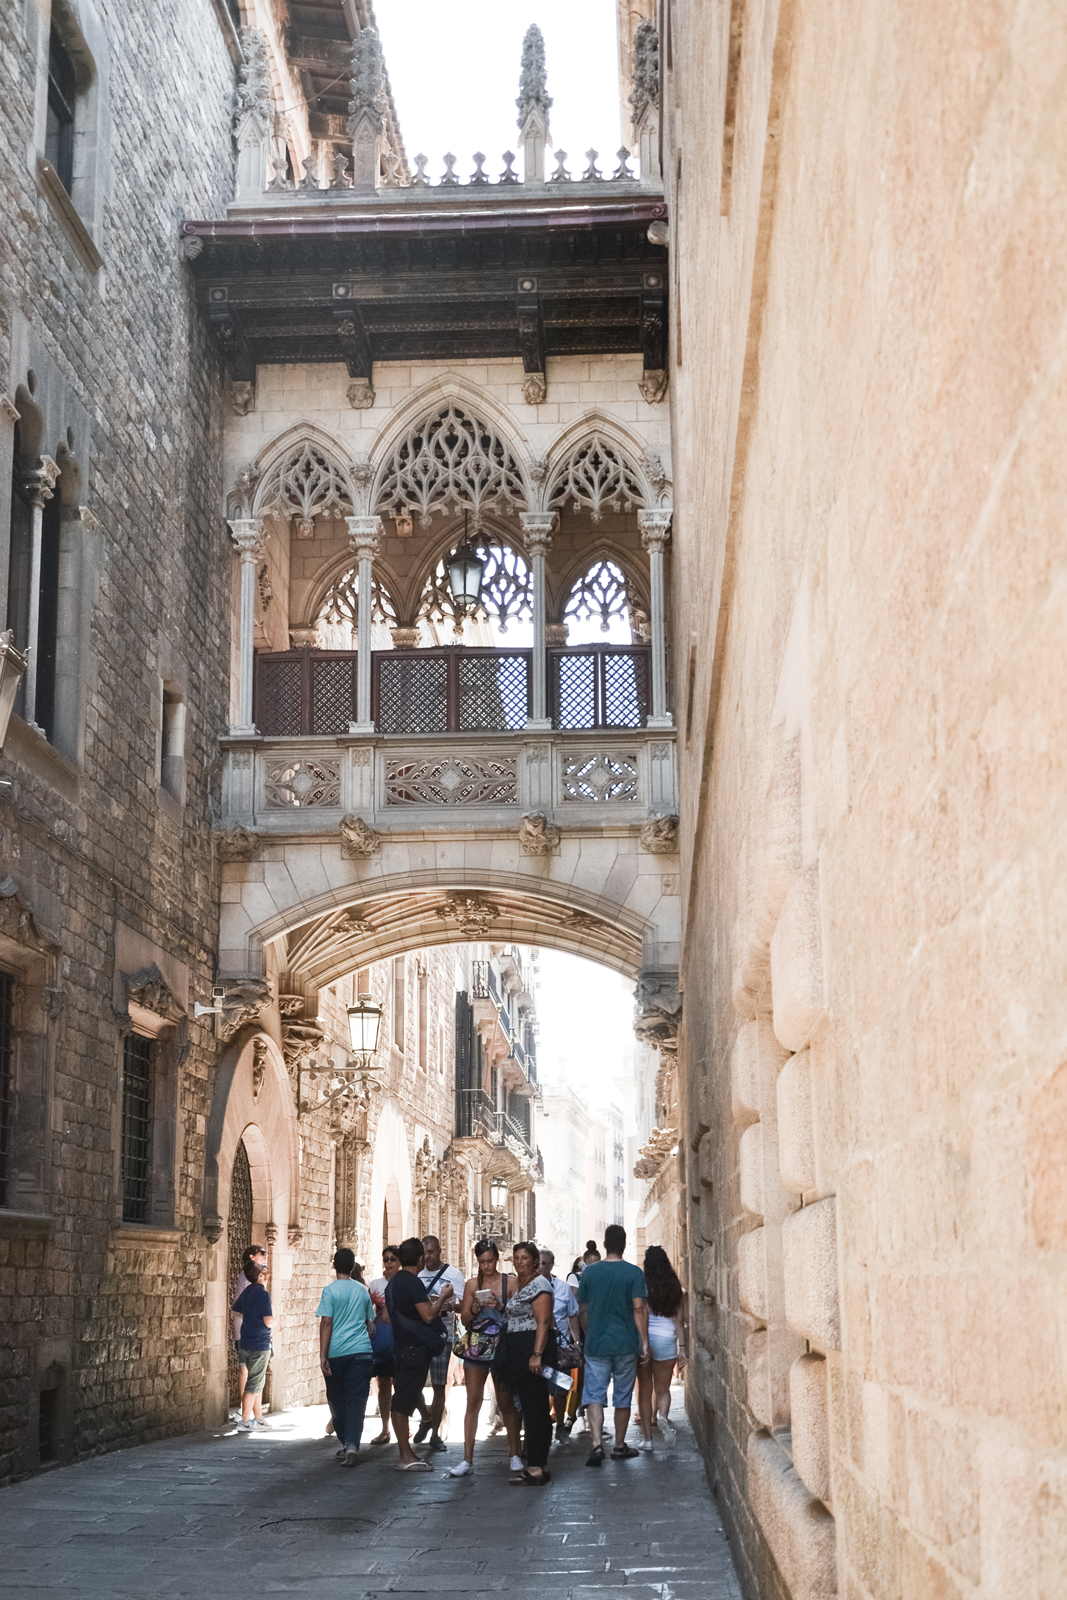 Gotico Pinterest The Gothic Quarter The Old Town Of Barcelona Epepa Travel Blog